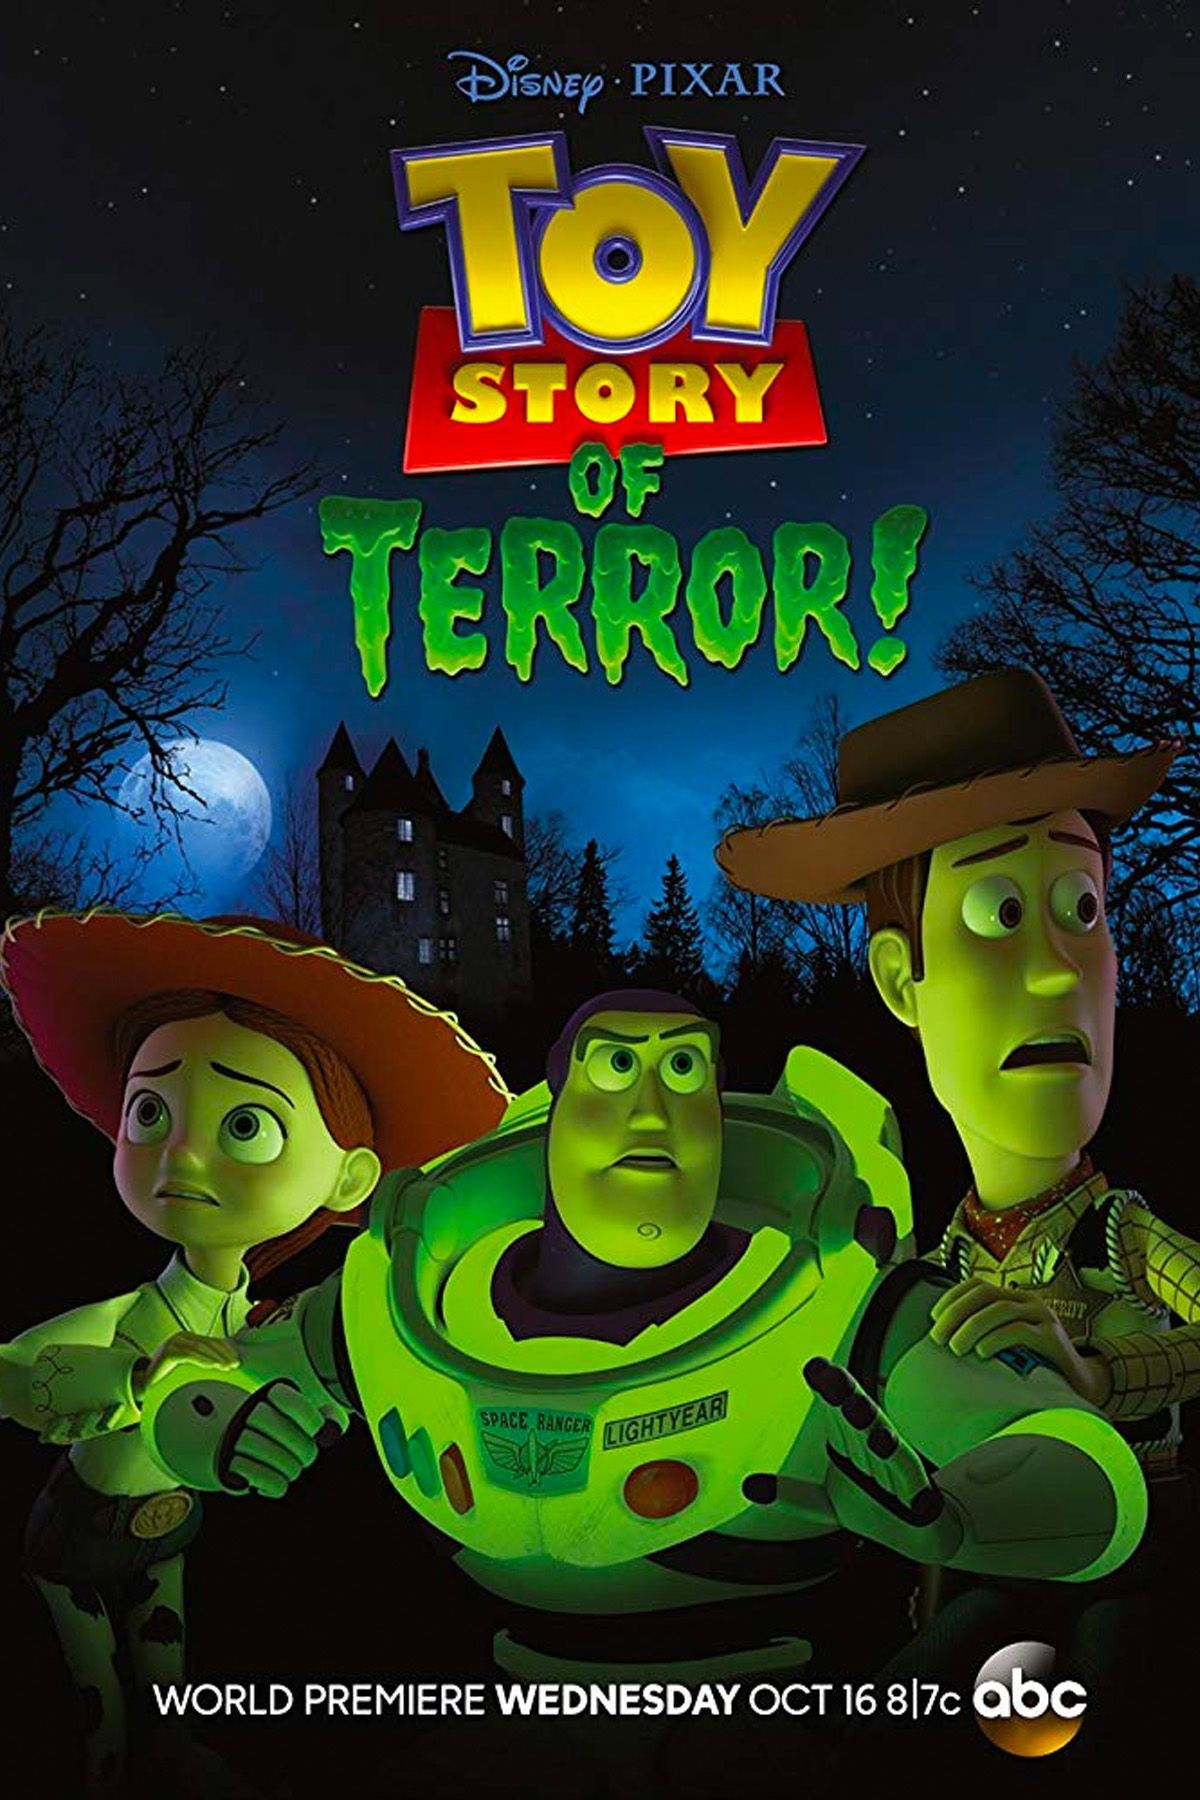 45 of the alltime best halloween movies for kids best